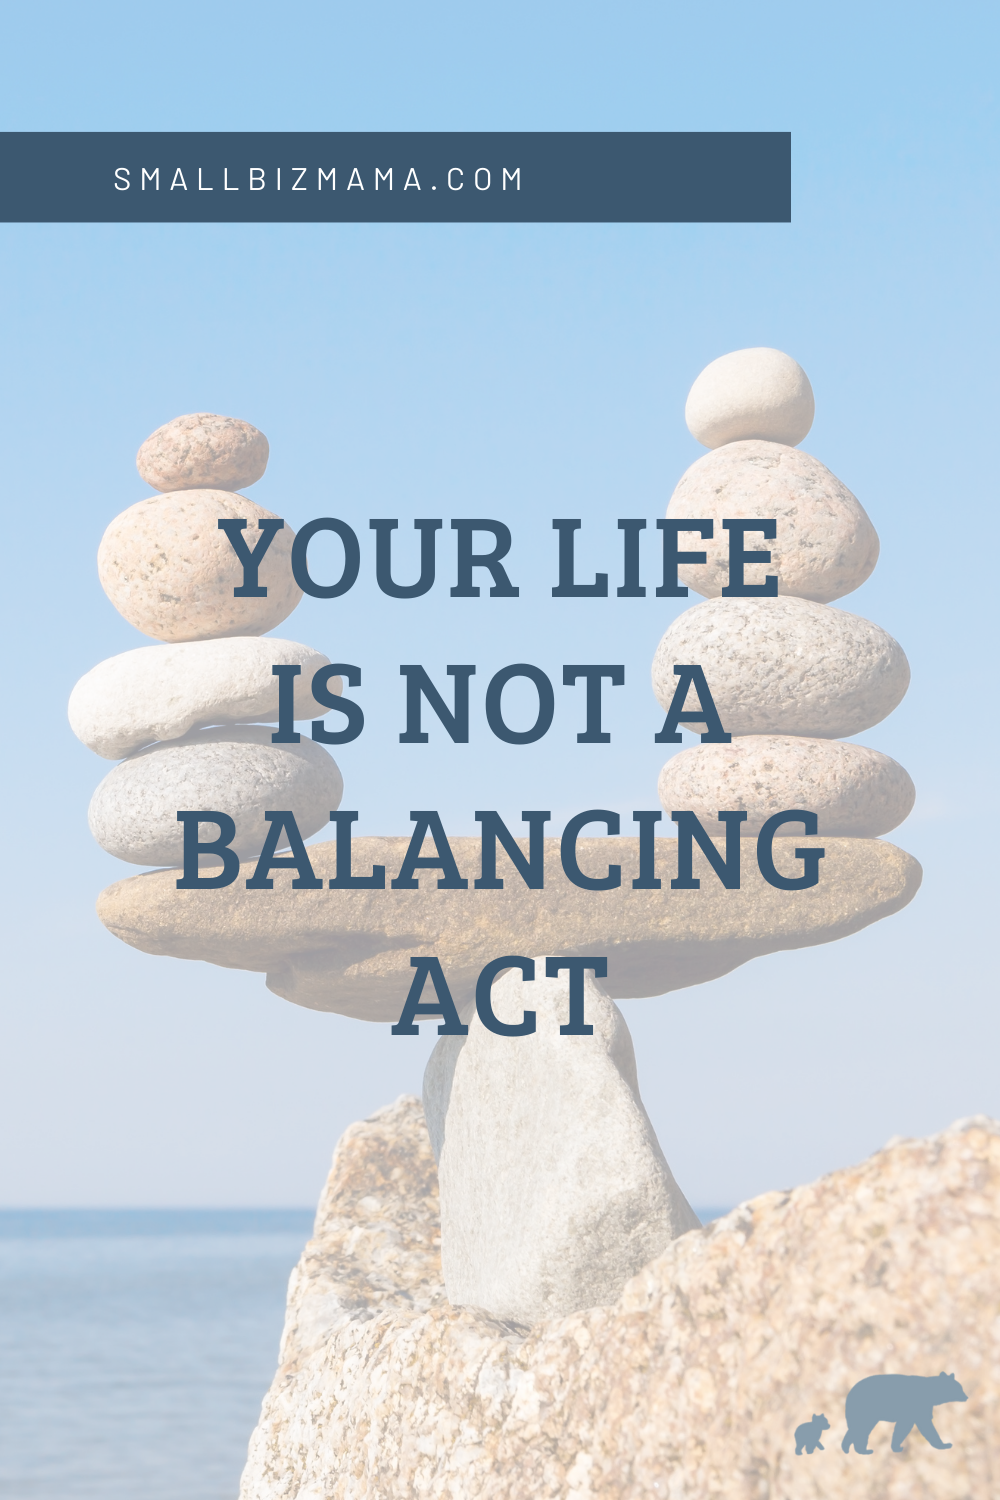 Your life is not a balancing act